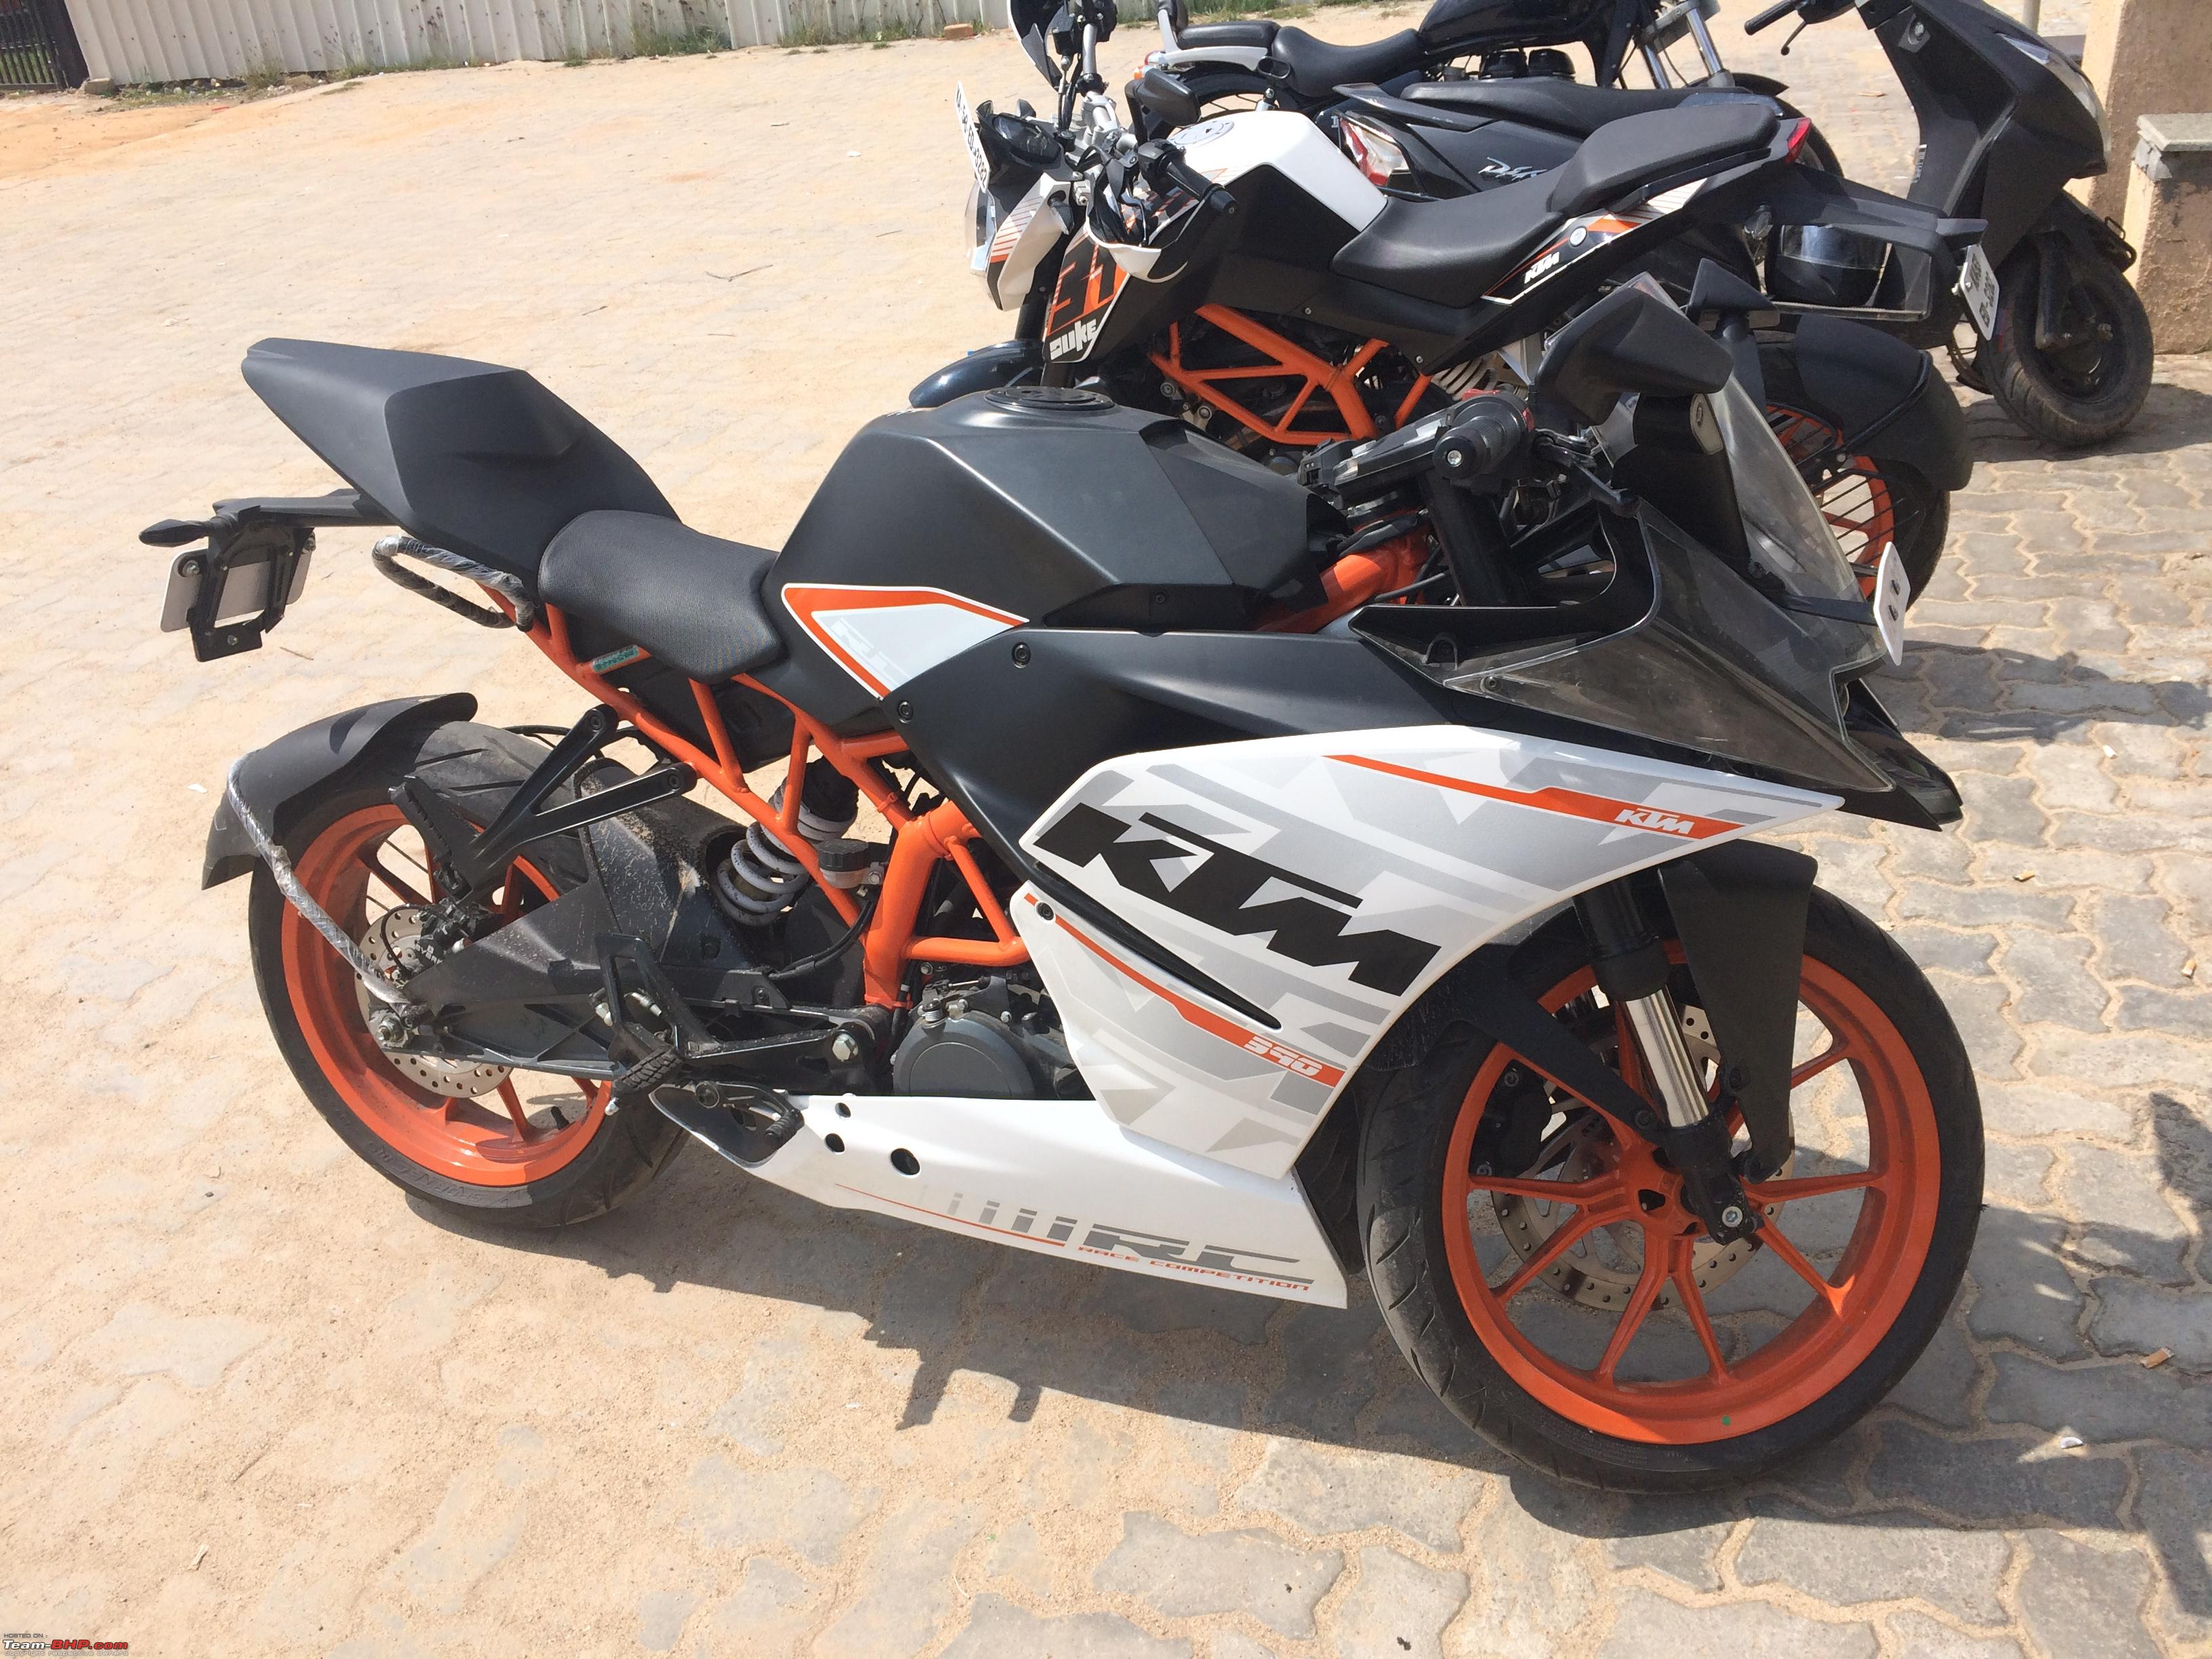 My ktm rc 390 review and ownership experience img_7667 jpg